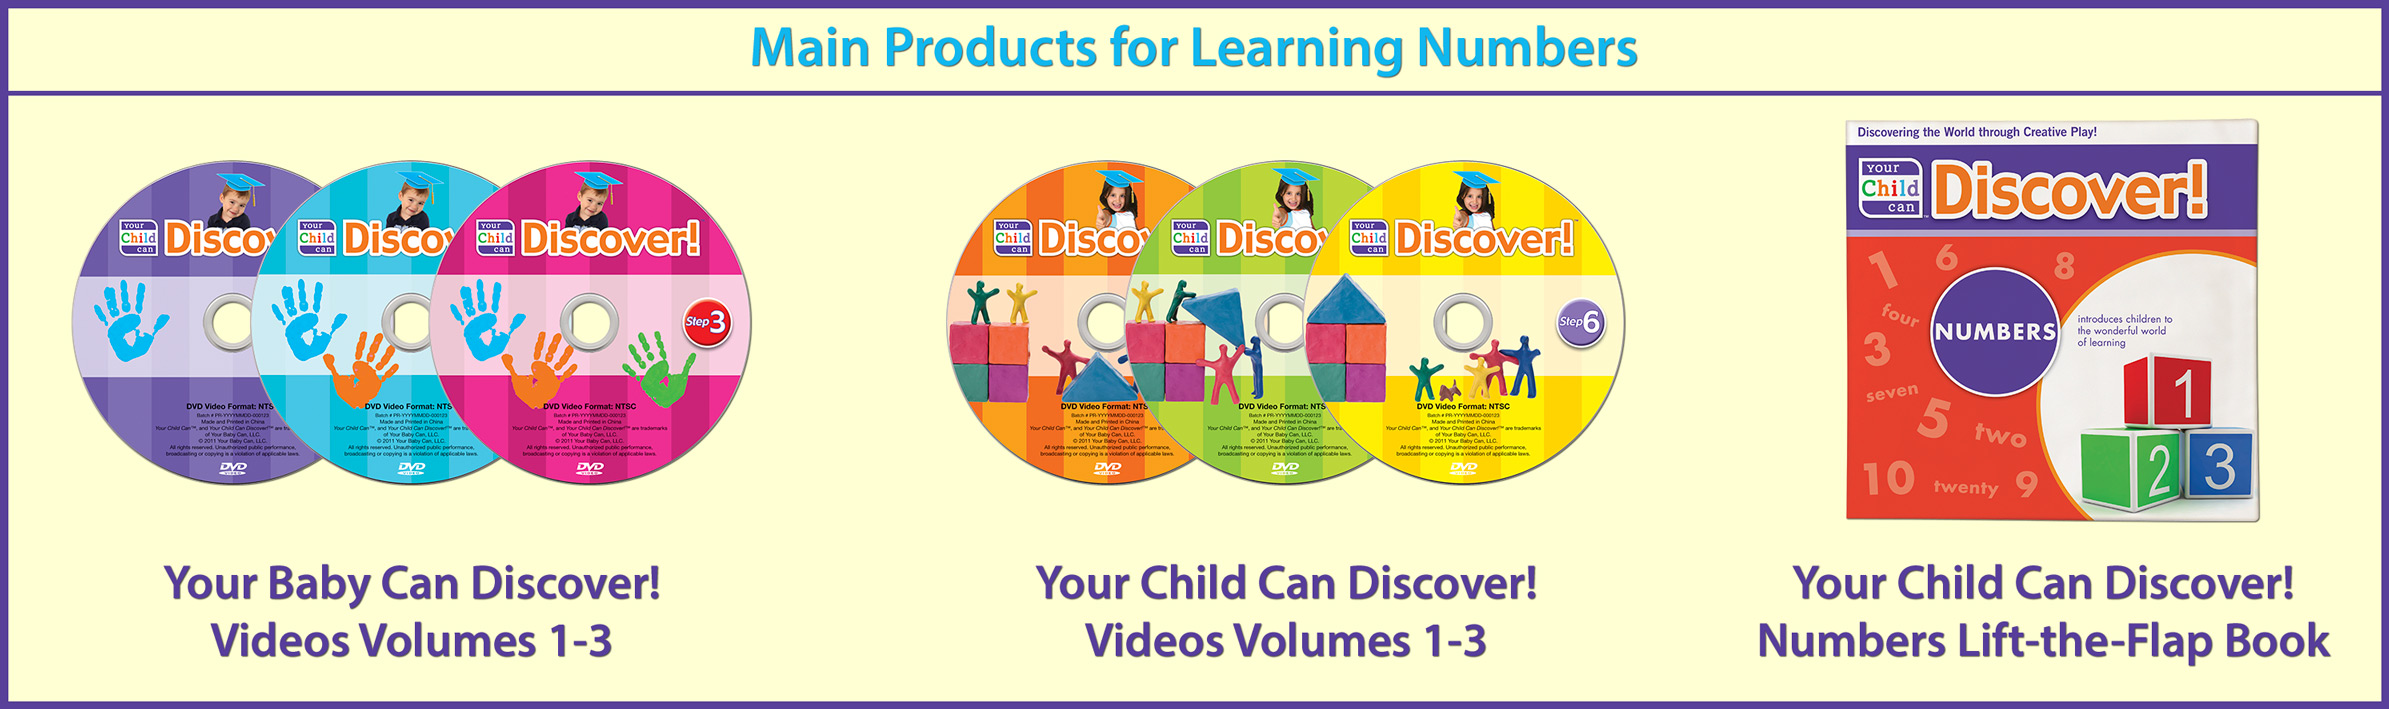 Main Products for Learning Numbers